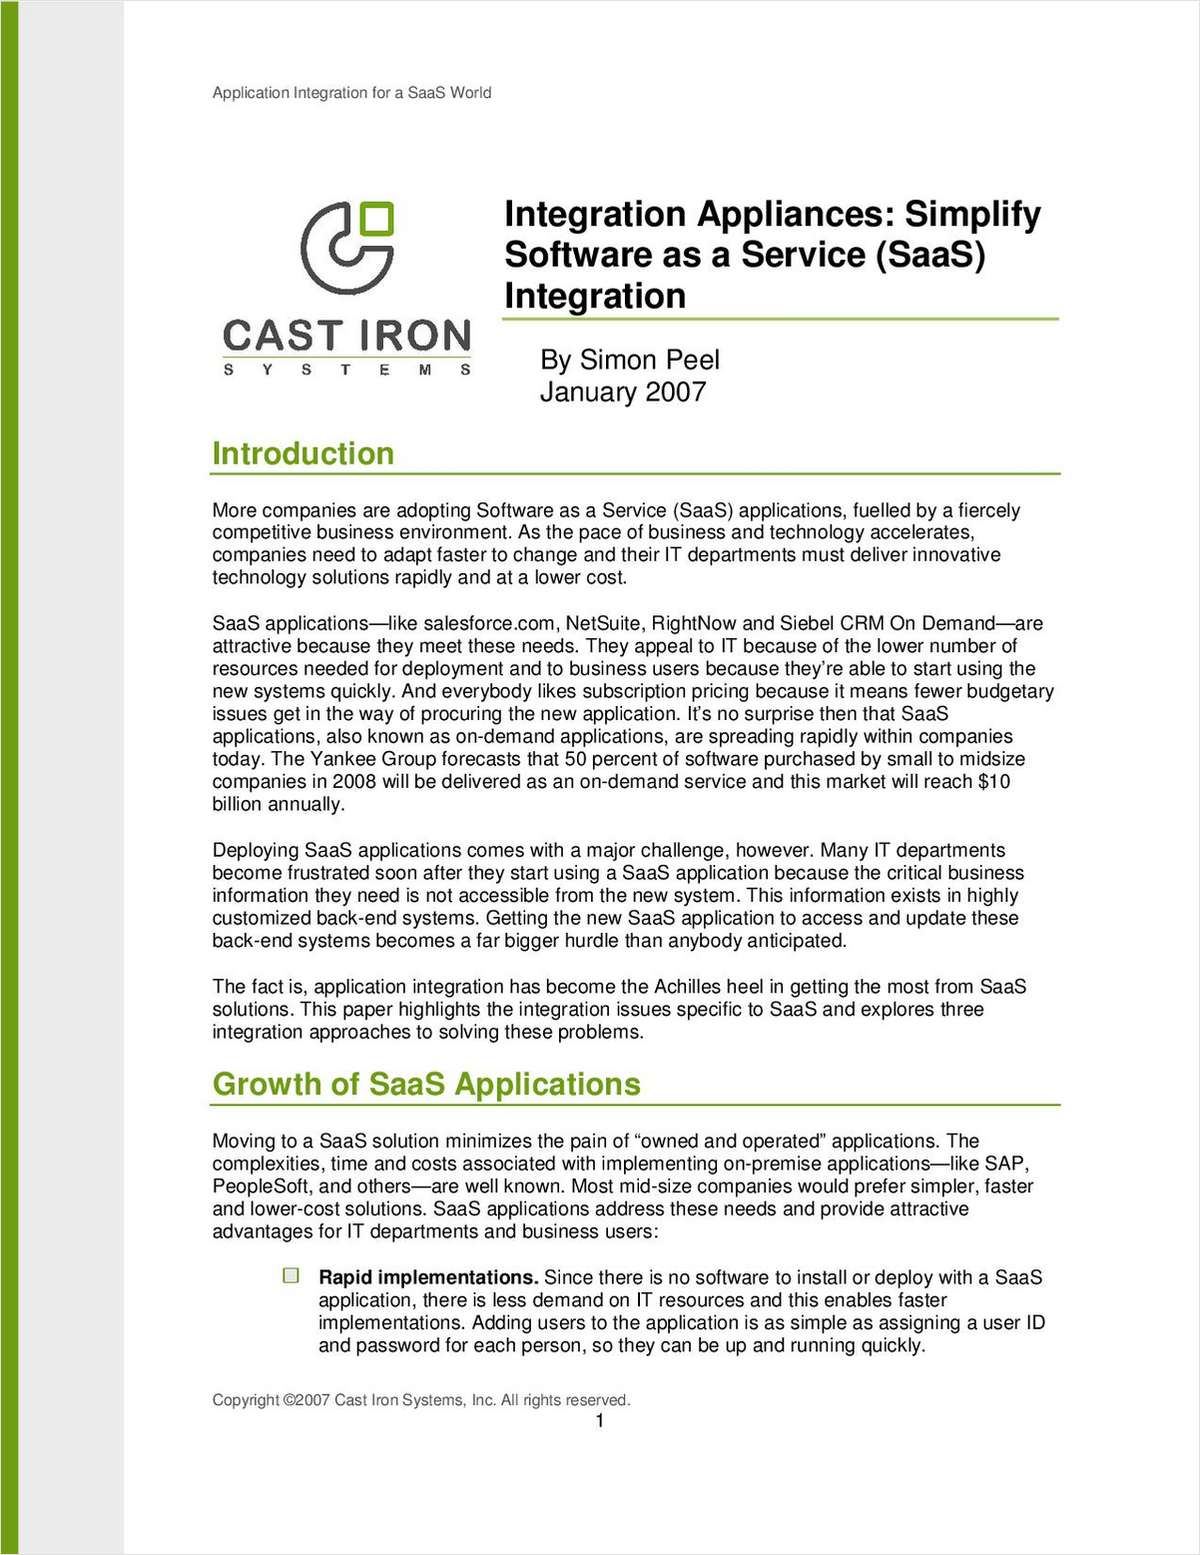 Integration Appliances: Simplify Software as a Service (SaaS)Integration